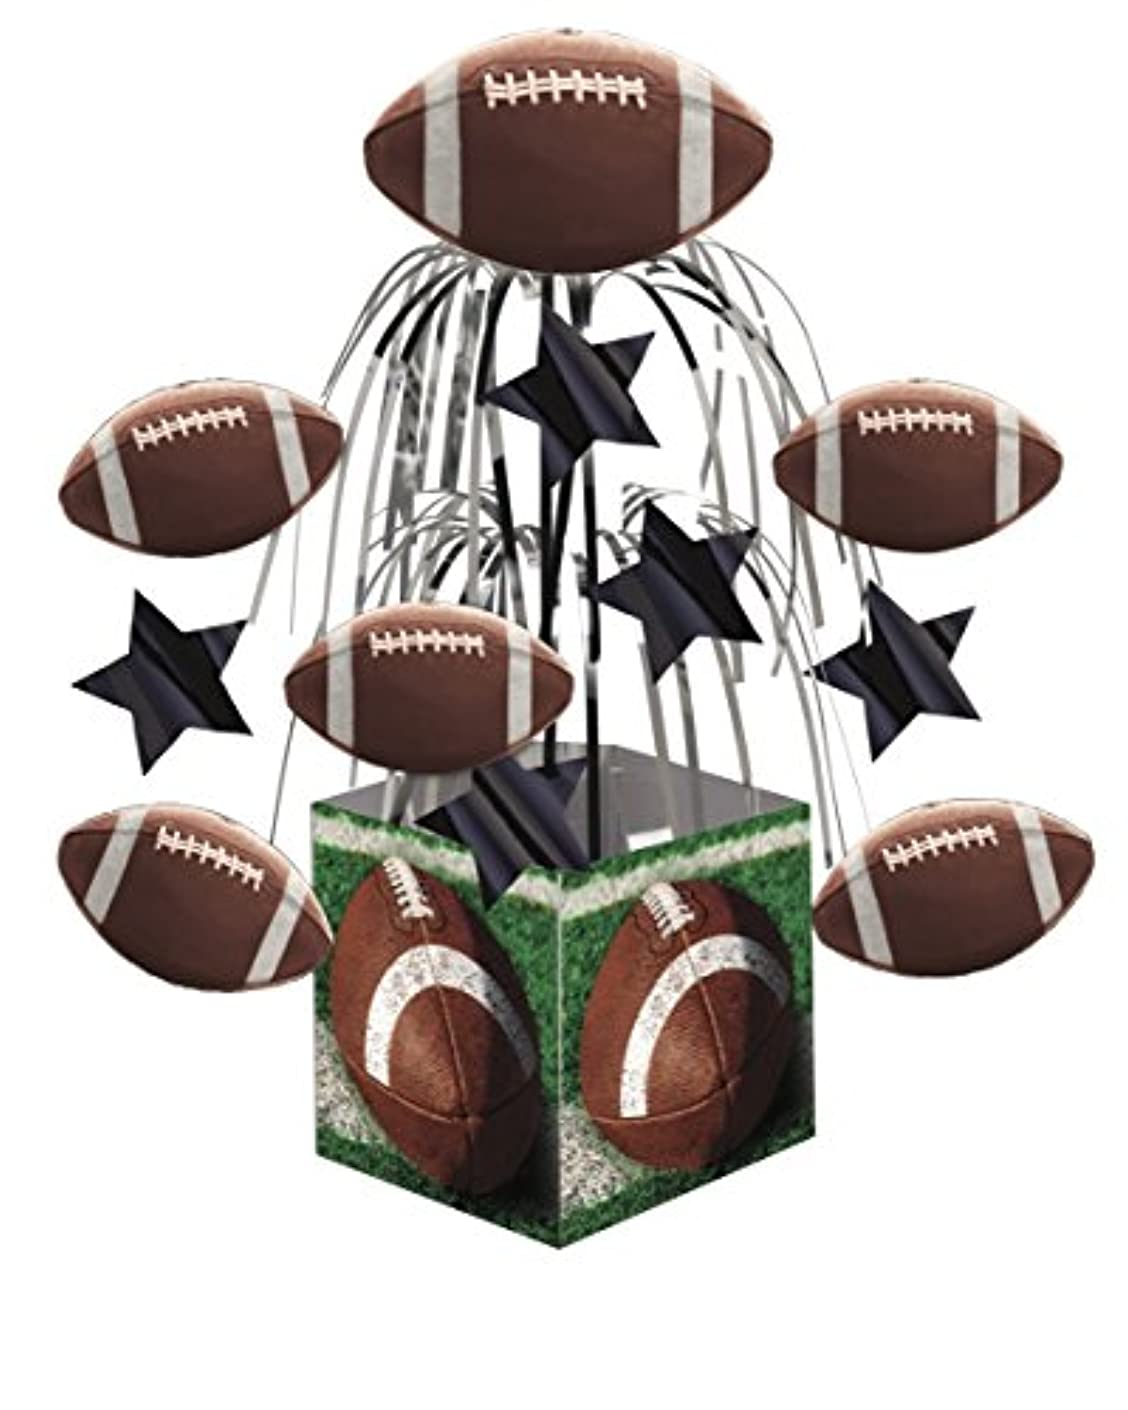 Creative Converting 266151 Stars and Footballs Mini Cascade with Printed Base Tailgate Rush Table Centerpiece Party Supplies, 19.25